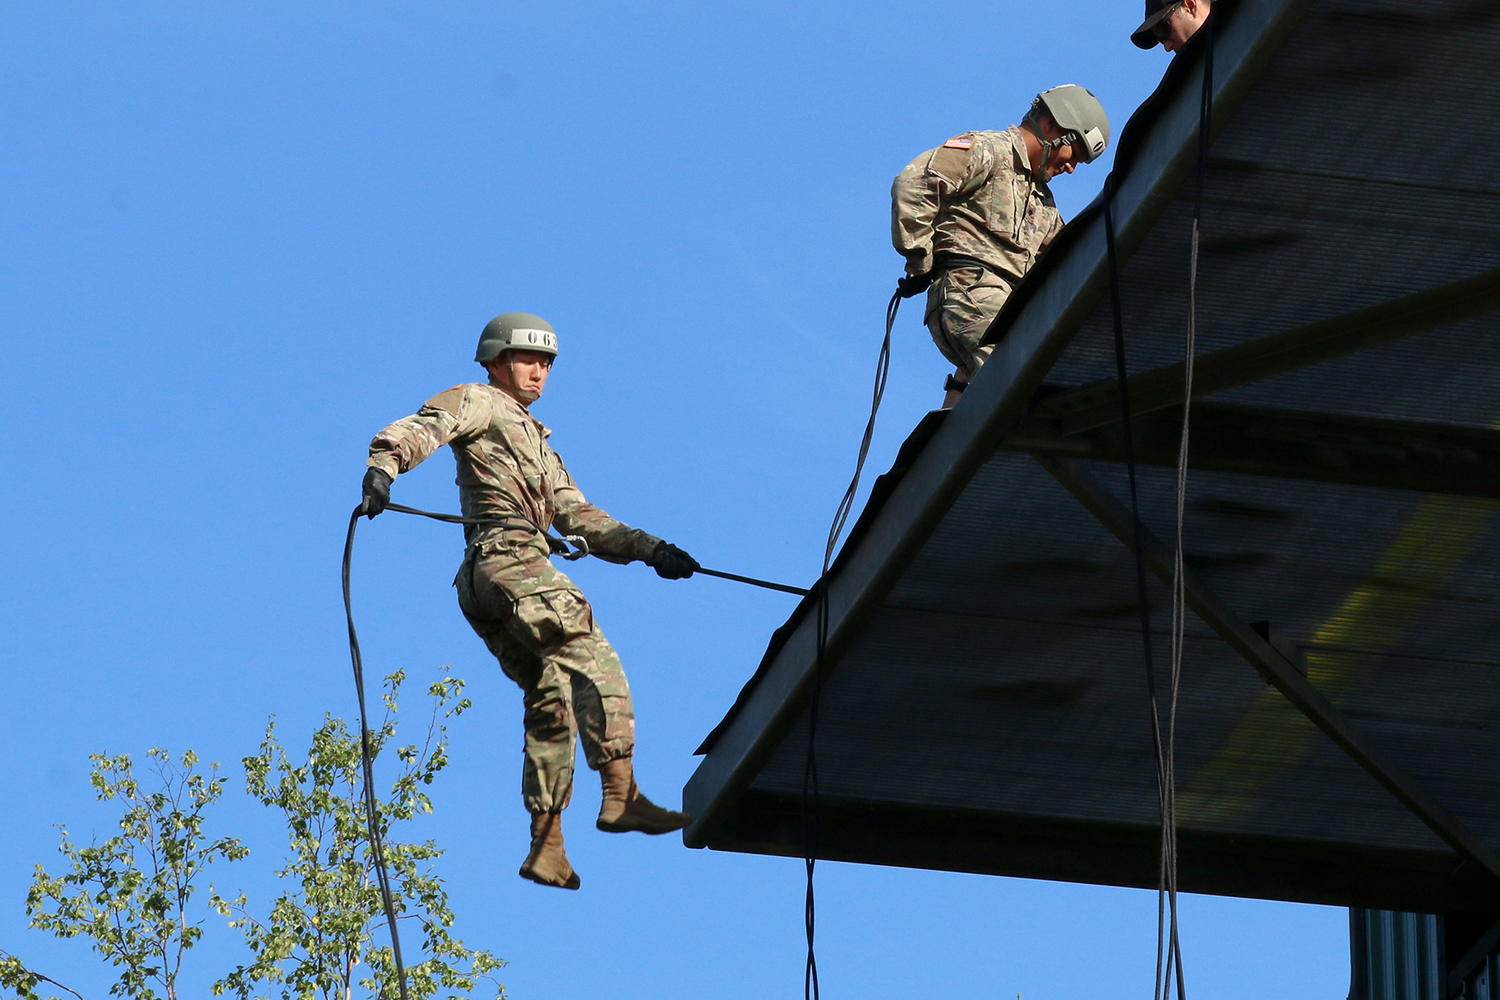 A soldier attending Air Assault School jumps from a 58-foot tower for the first time as he rappels down a rope at Joint Base Elmendorf-Richardson, July 16, 2018. (Sgt. Alex Skripnichuk/Army)